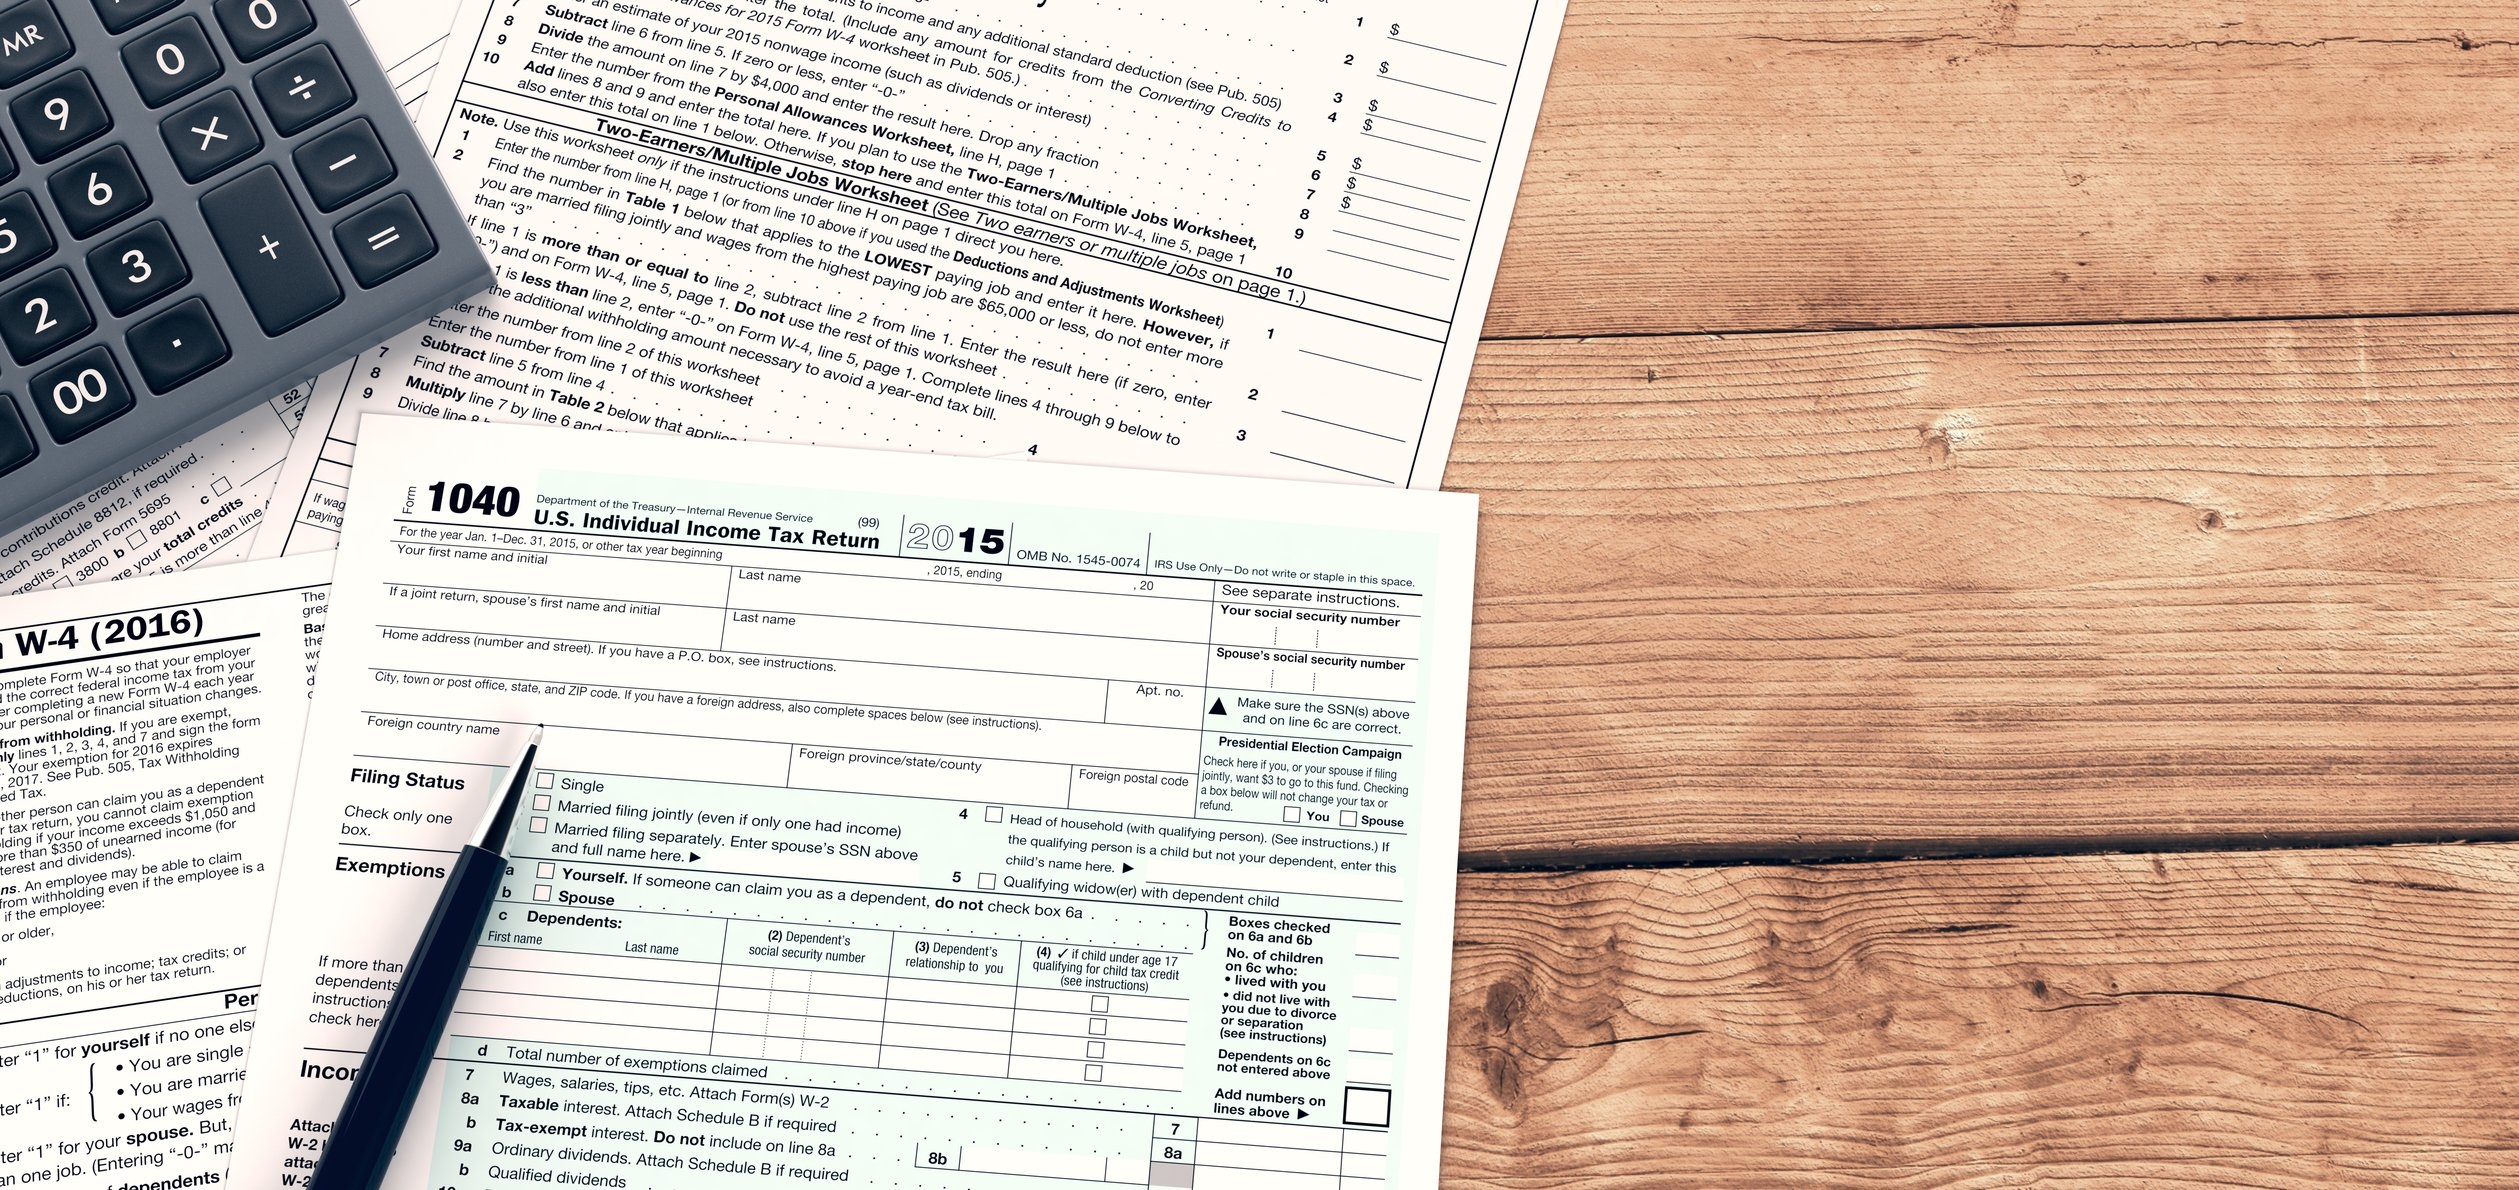 Tax forms with calculator and pen on wooden surface.